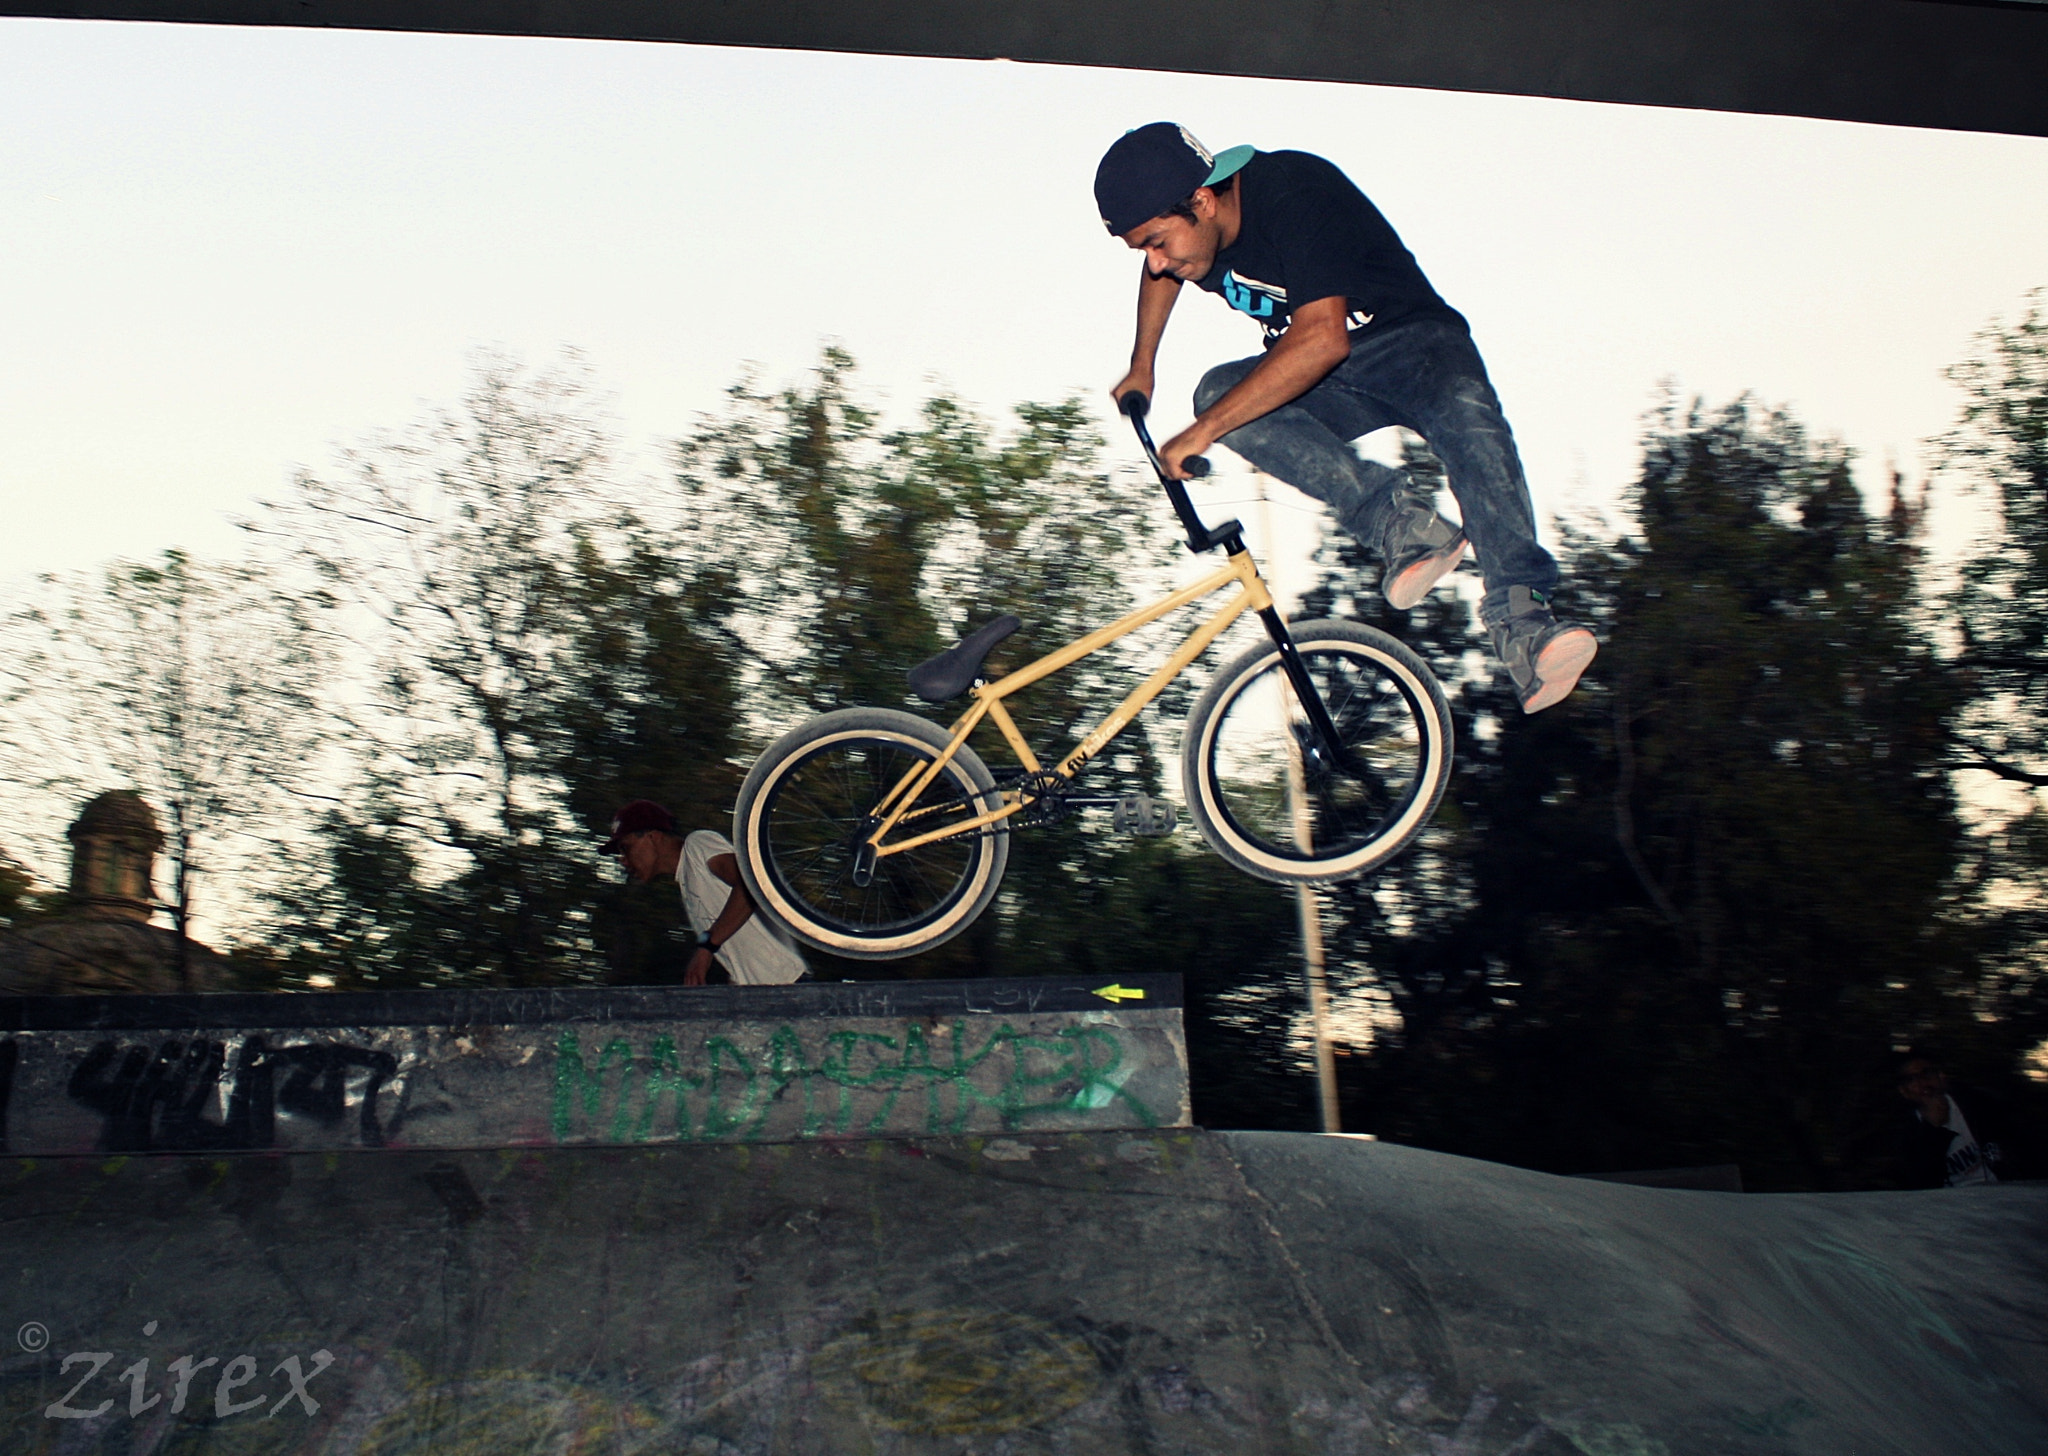 Photograph FAST DOWNSIDE WHIP by Eric Zirex on 500px